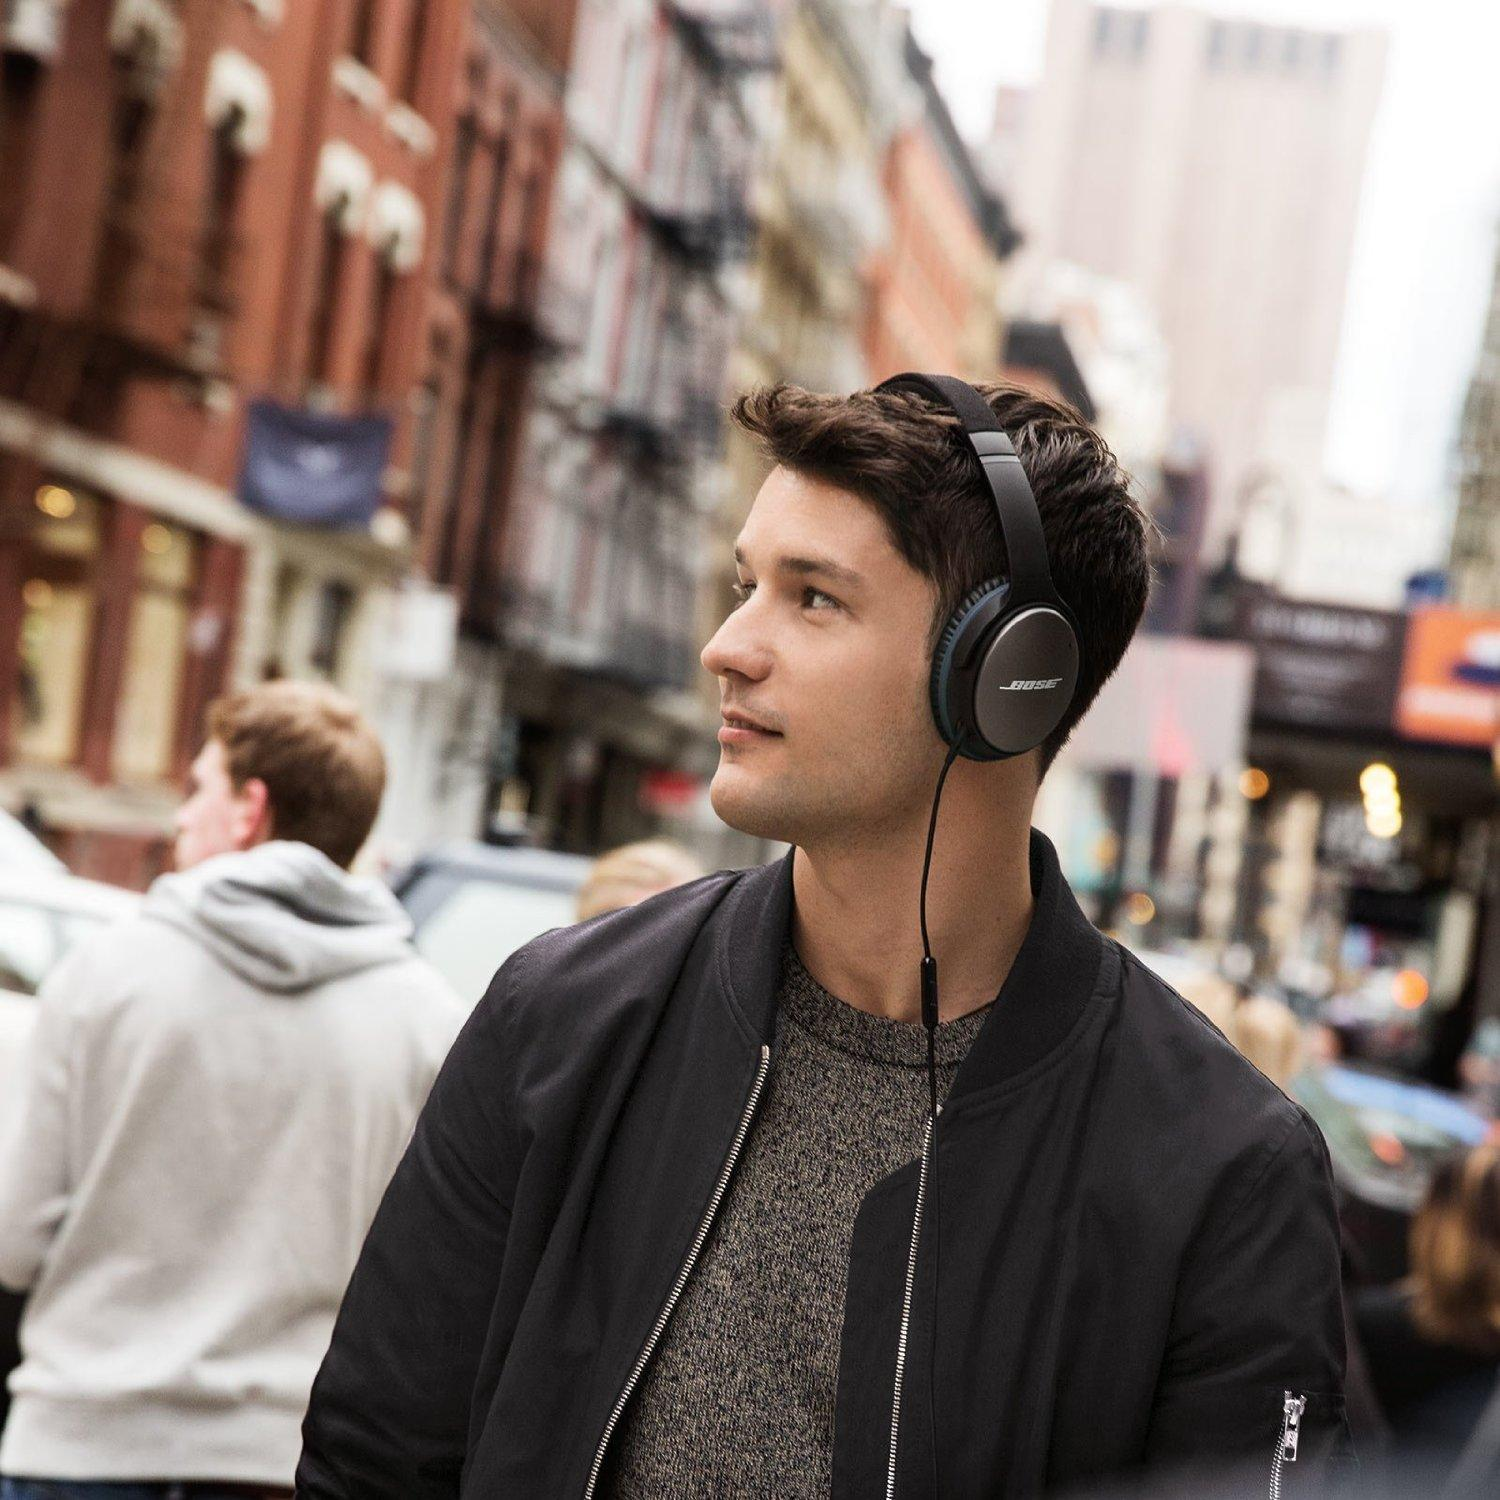 $251.61! Bose QuietComfort 25 Acoustic Noise Cancelling Headphones for Apple devices- Black